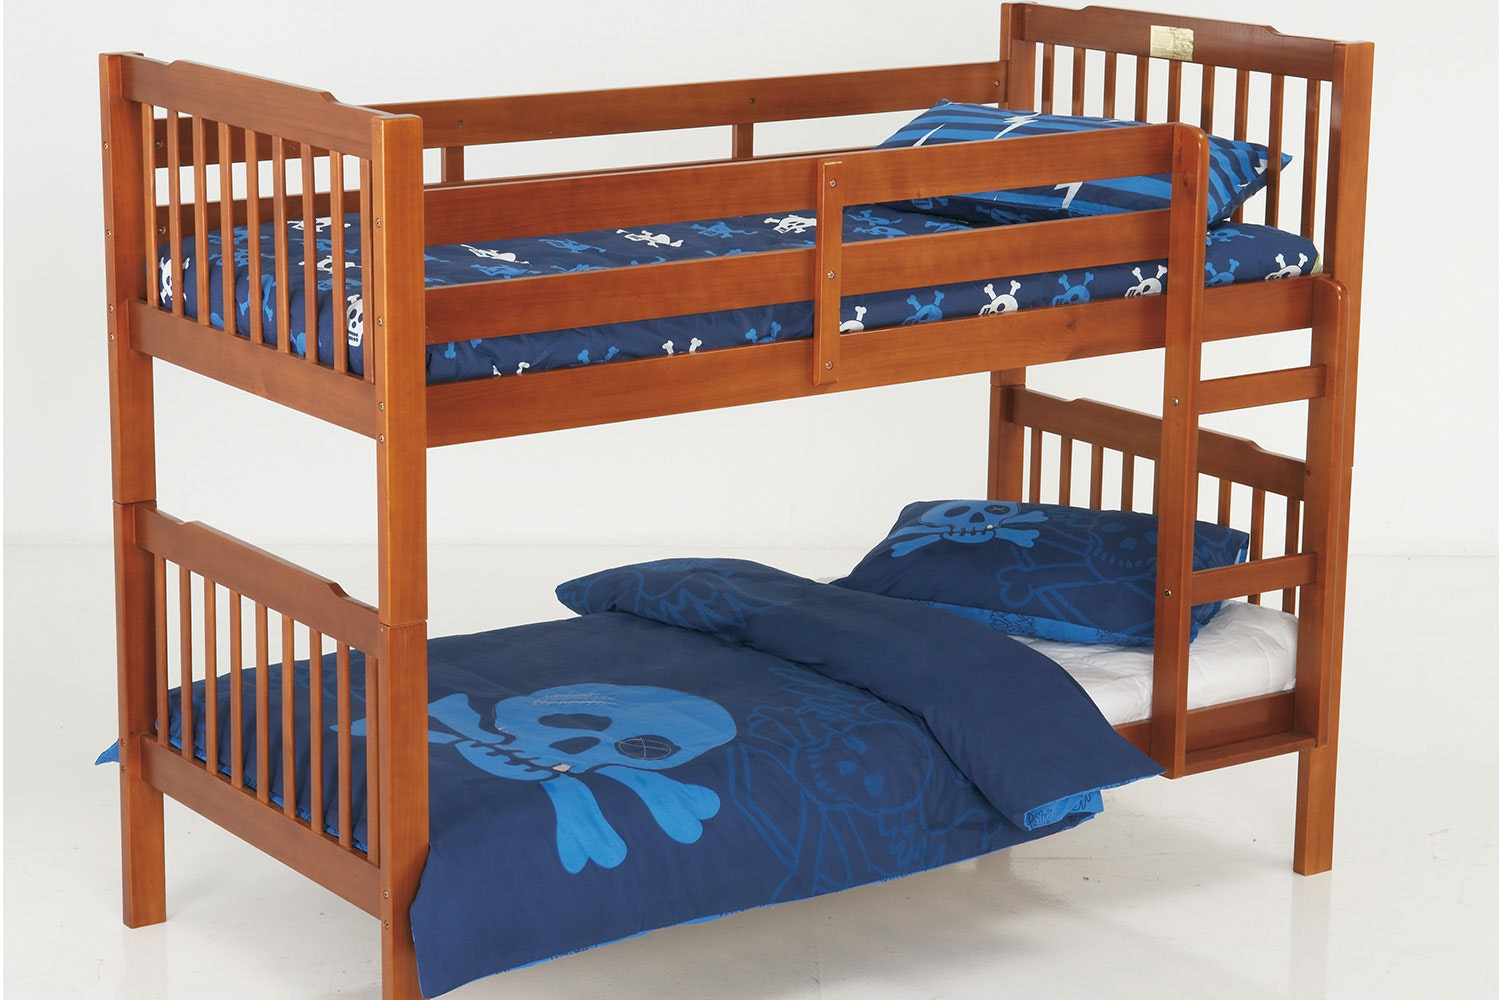 Oak Jessica Single Bunk Bed Frame by Nero Furniture